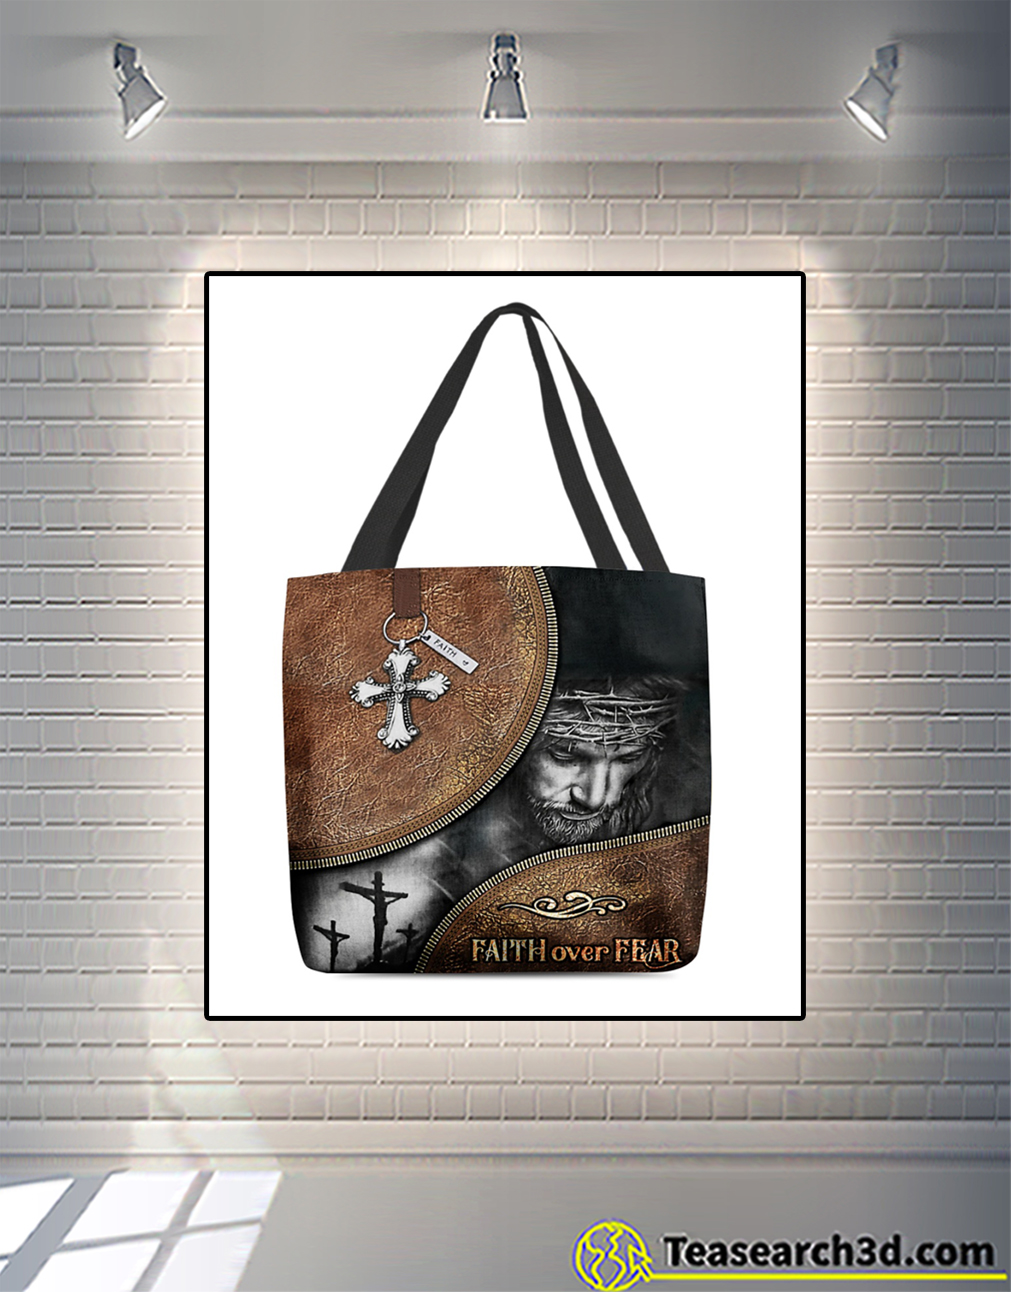 Jesus faith over fear all-over tote bag